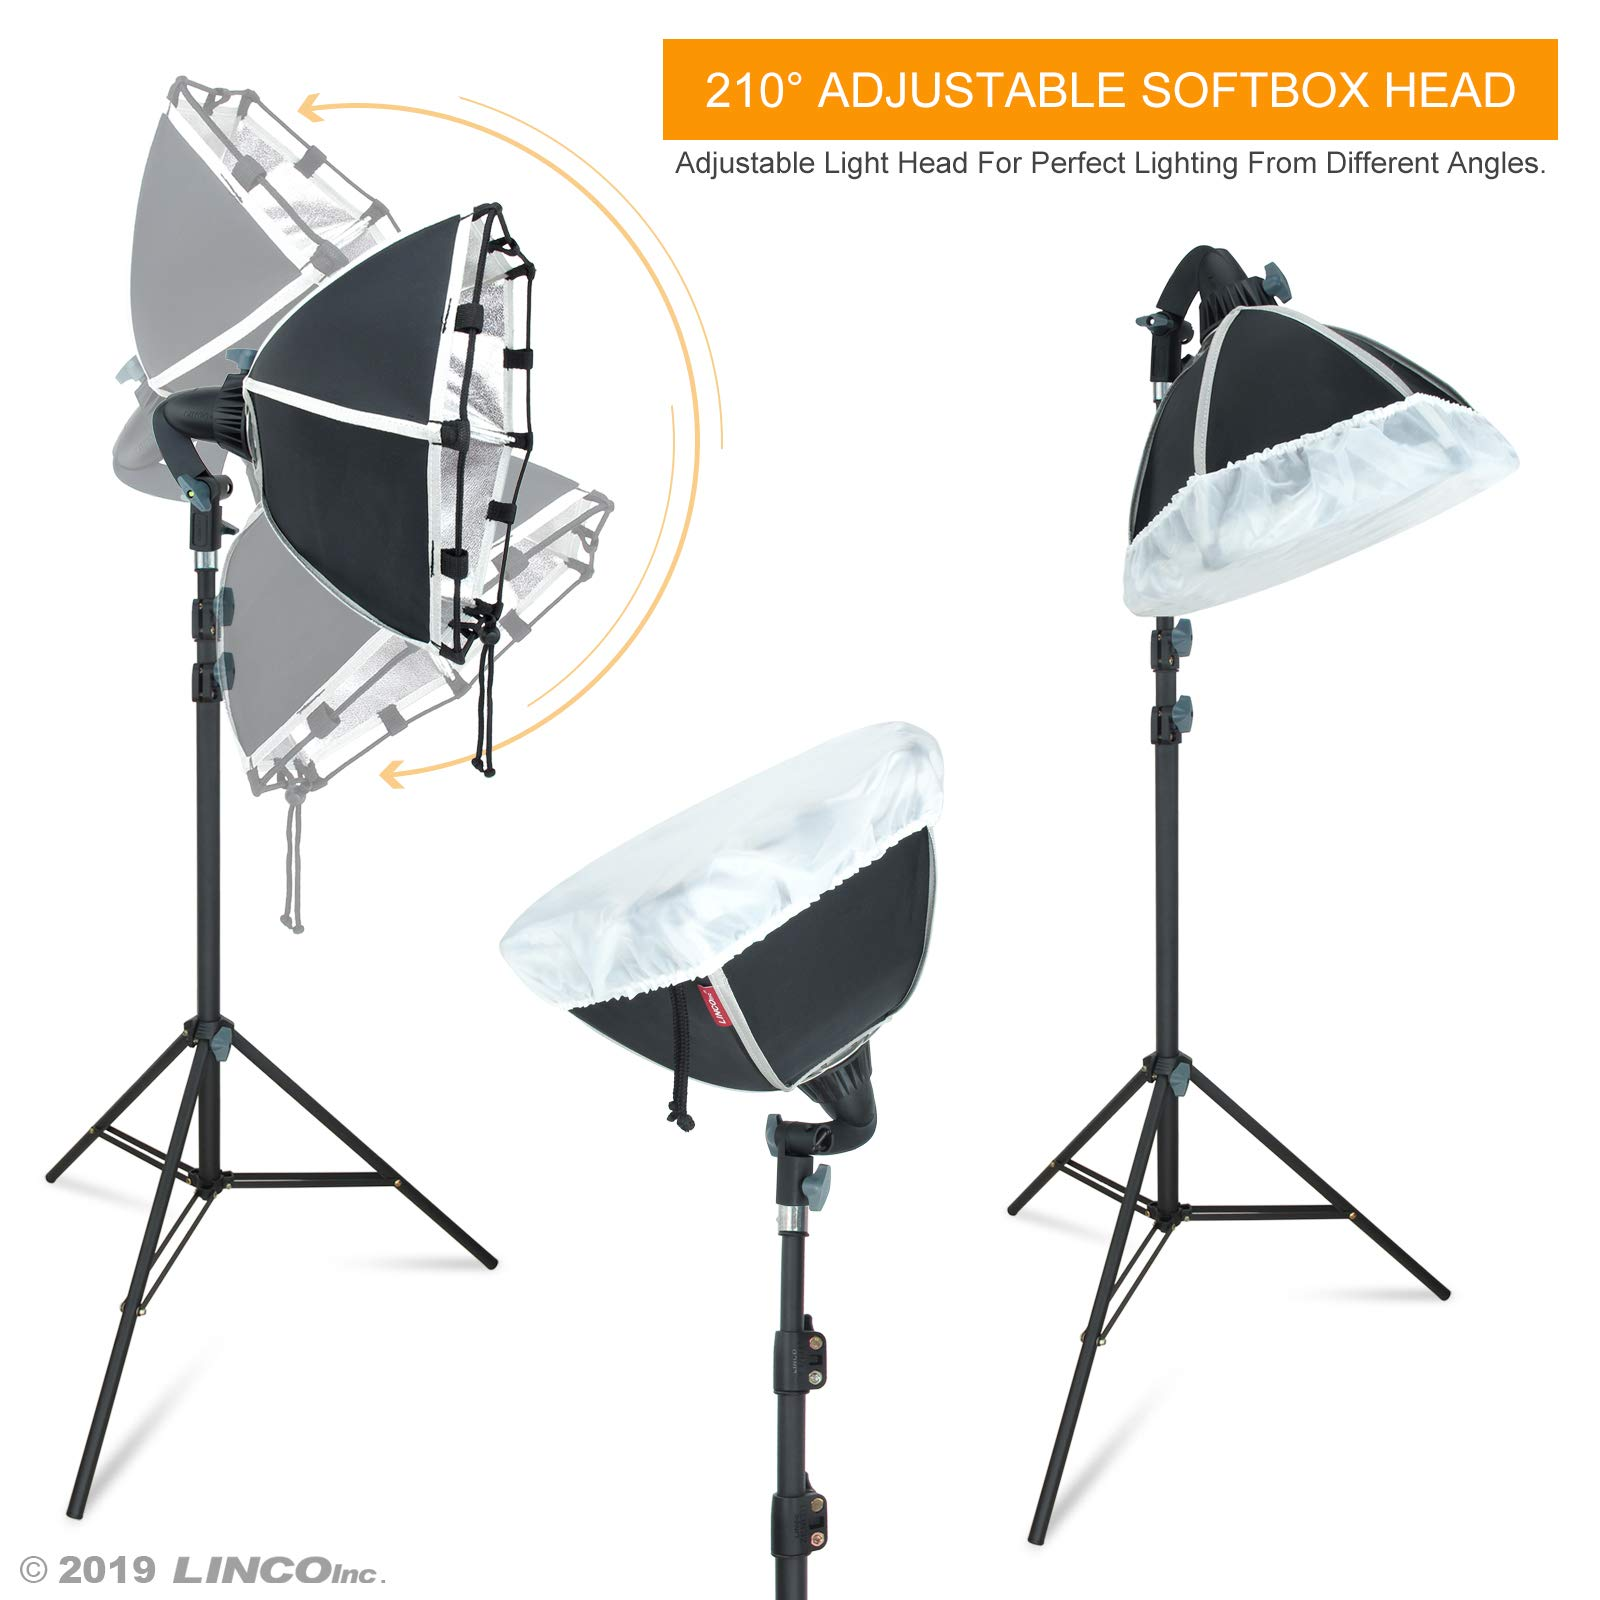 LINCO Lincostore Photography Studio Lighting Kit Arm for Video Continuous Lighting Shadow Boom Box Lights Set Headlight Softbox Setup with Daylight Bulbs 2400 Lumens AM261 by Linco (Image #4)